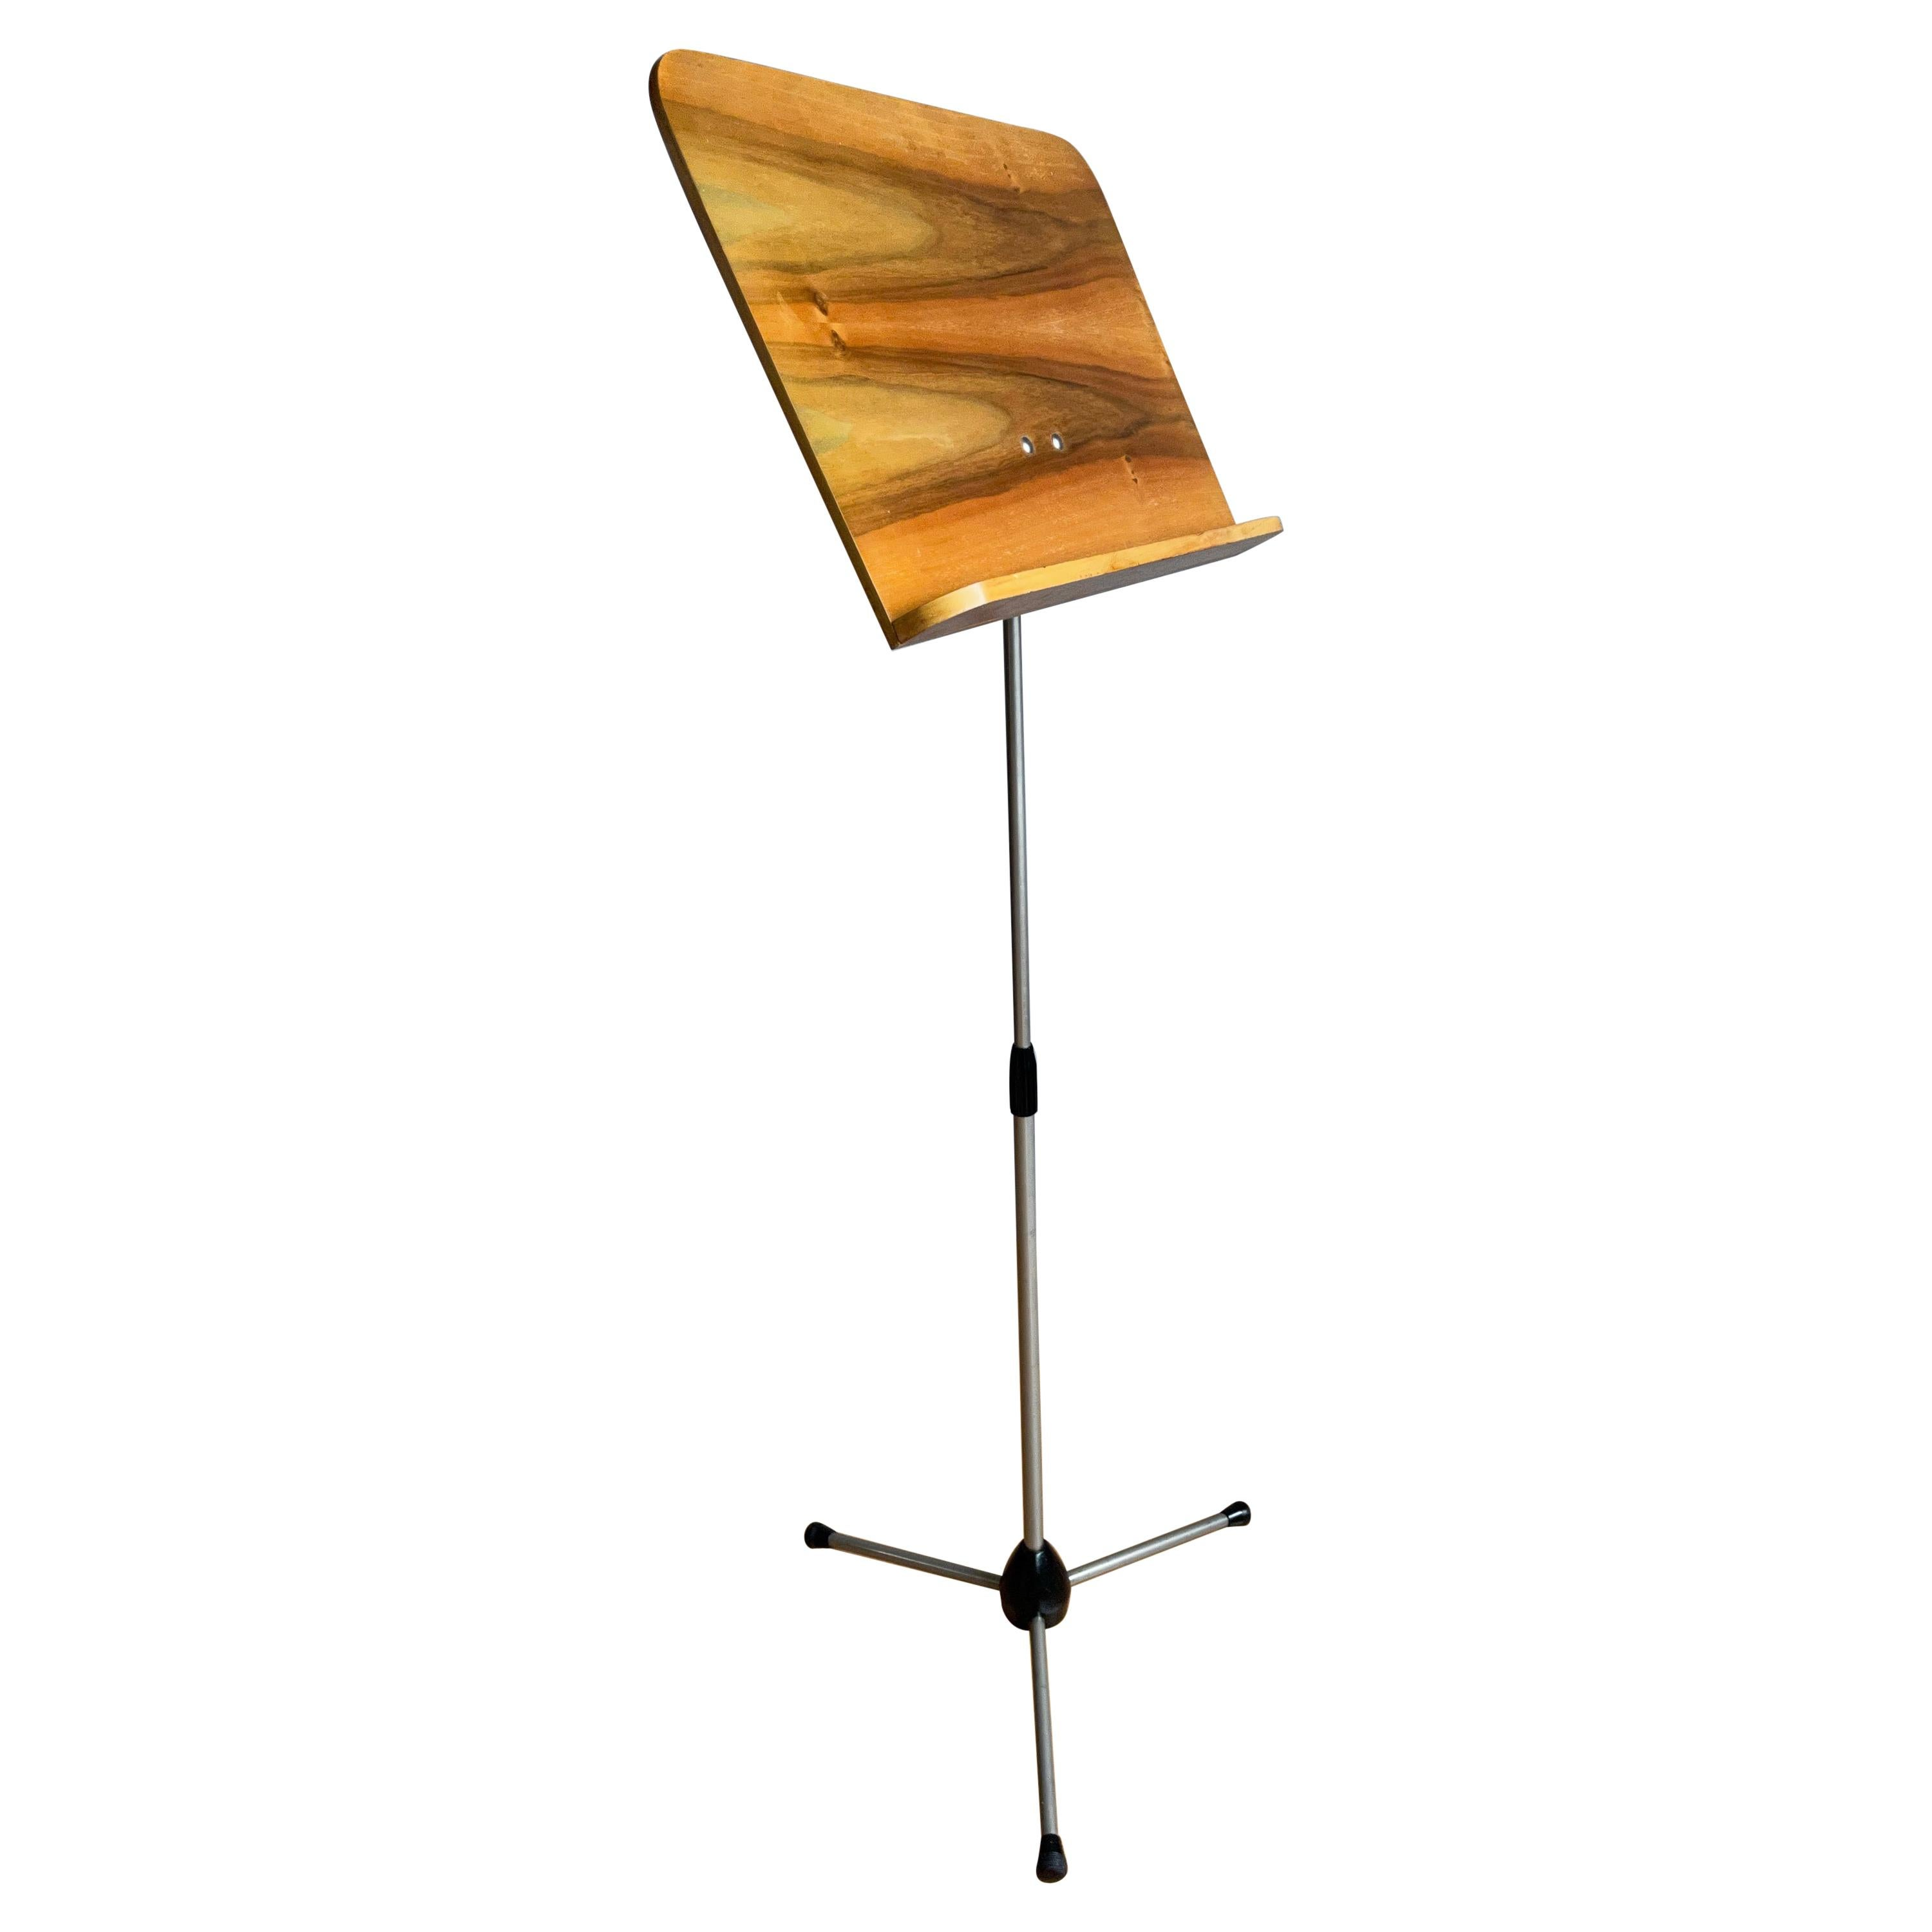 Rare Midcentury Modern Adjustable Wooden & Iron Tripod Music Paper Lectern Stand